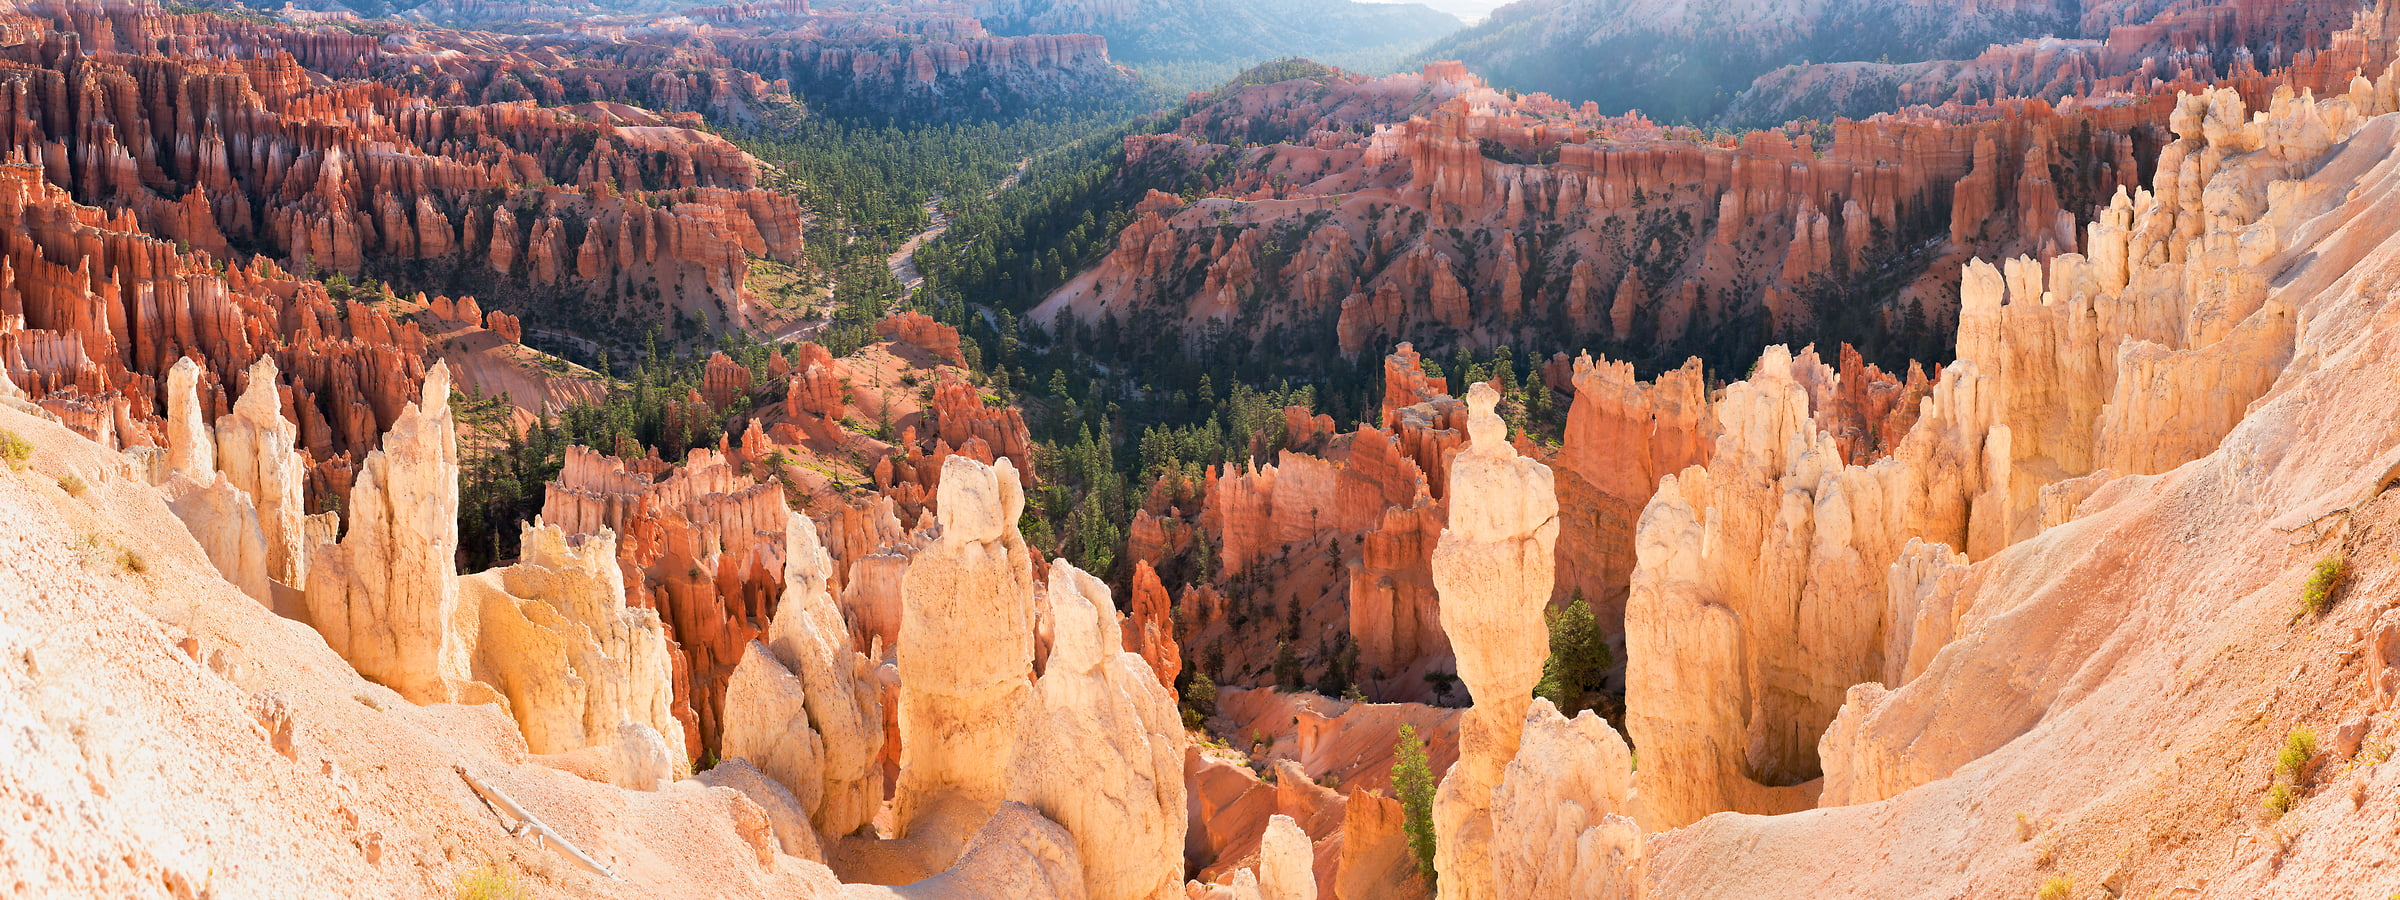 435 megapixels! A very high resolution, large-format VAST photo of an American landscape with natural formations; geological photograph created by Jim Tarpo in Bryce Canyon National Park, Utah